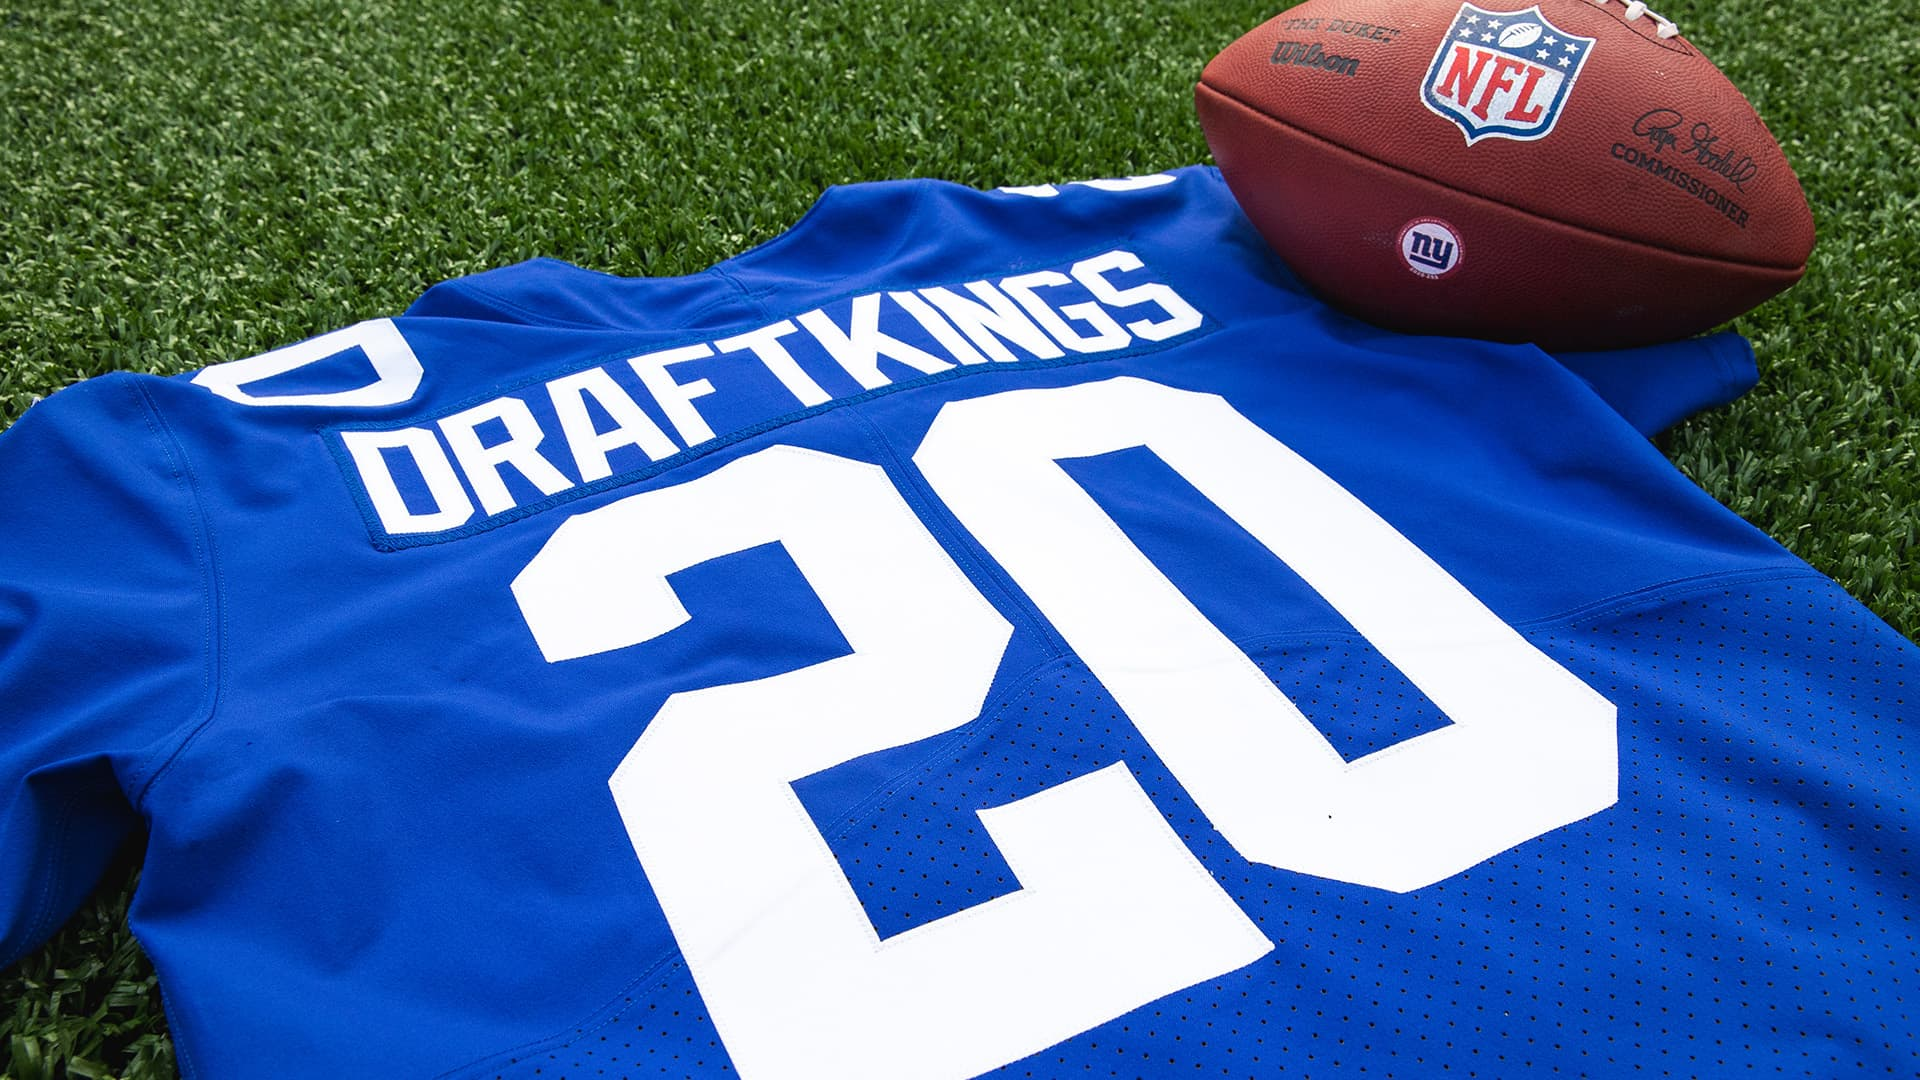 DraftKings, New York Giants agree to exclusive sports betting deal  image